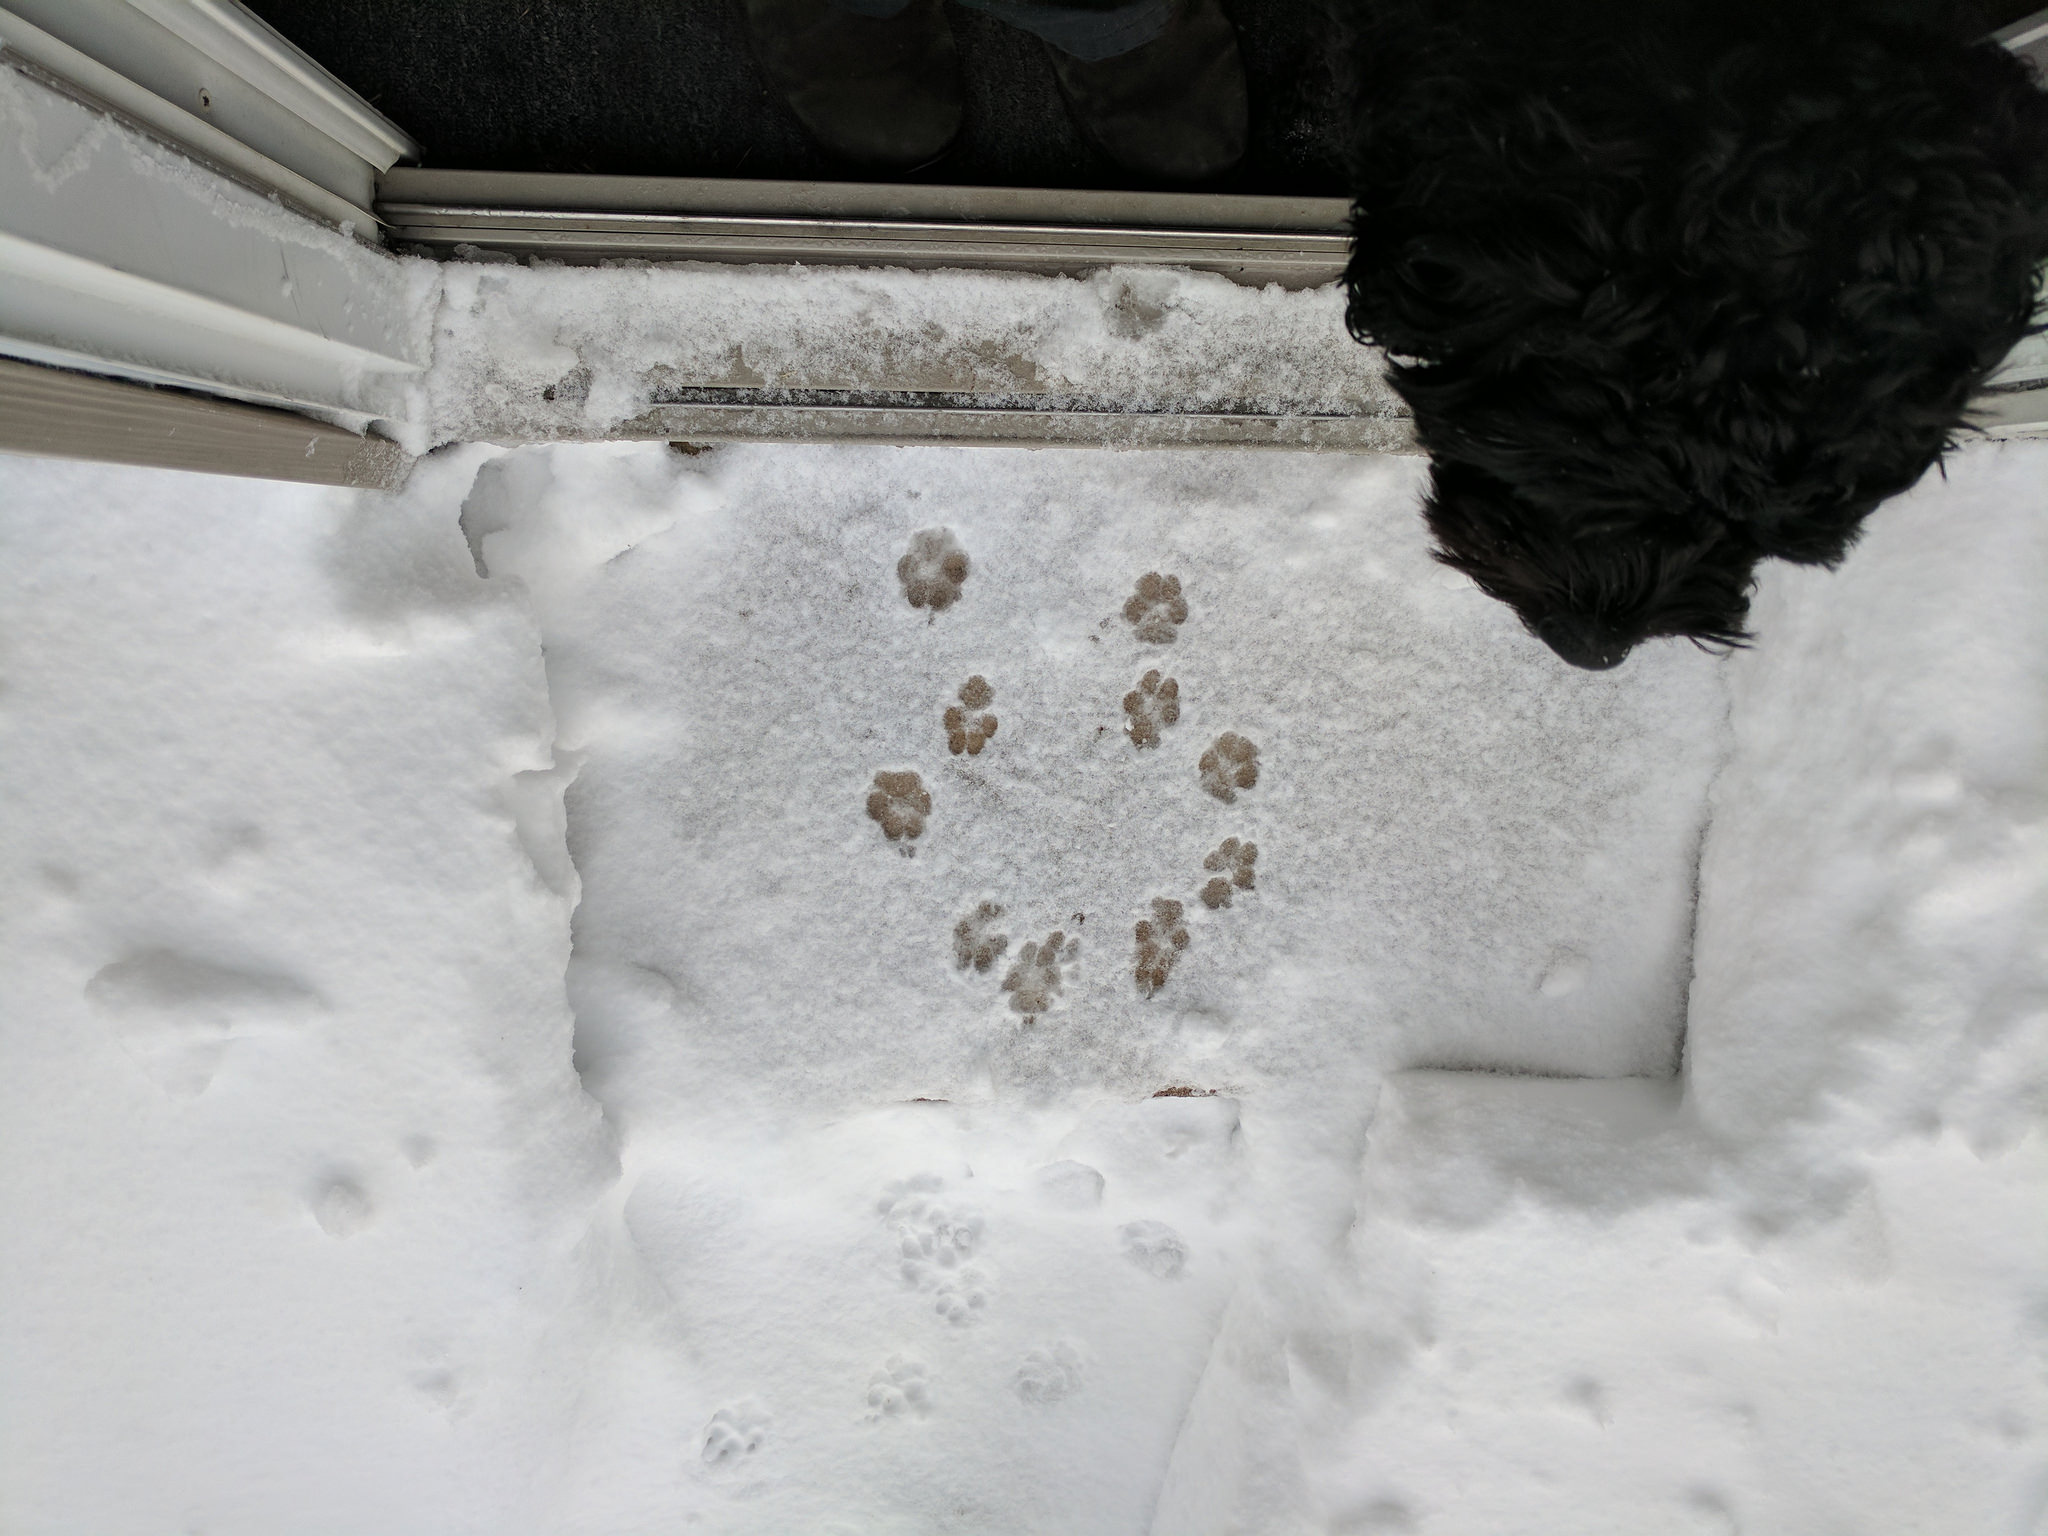 Puppy paw prints in the snow.